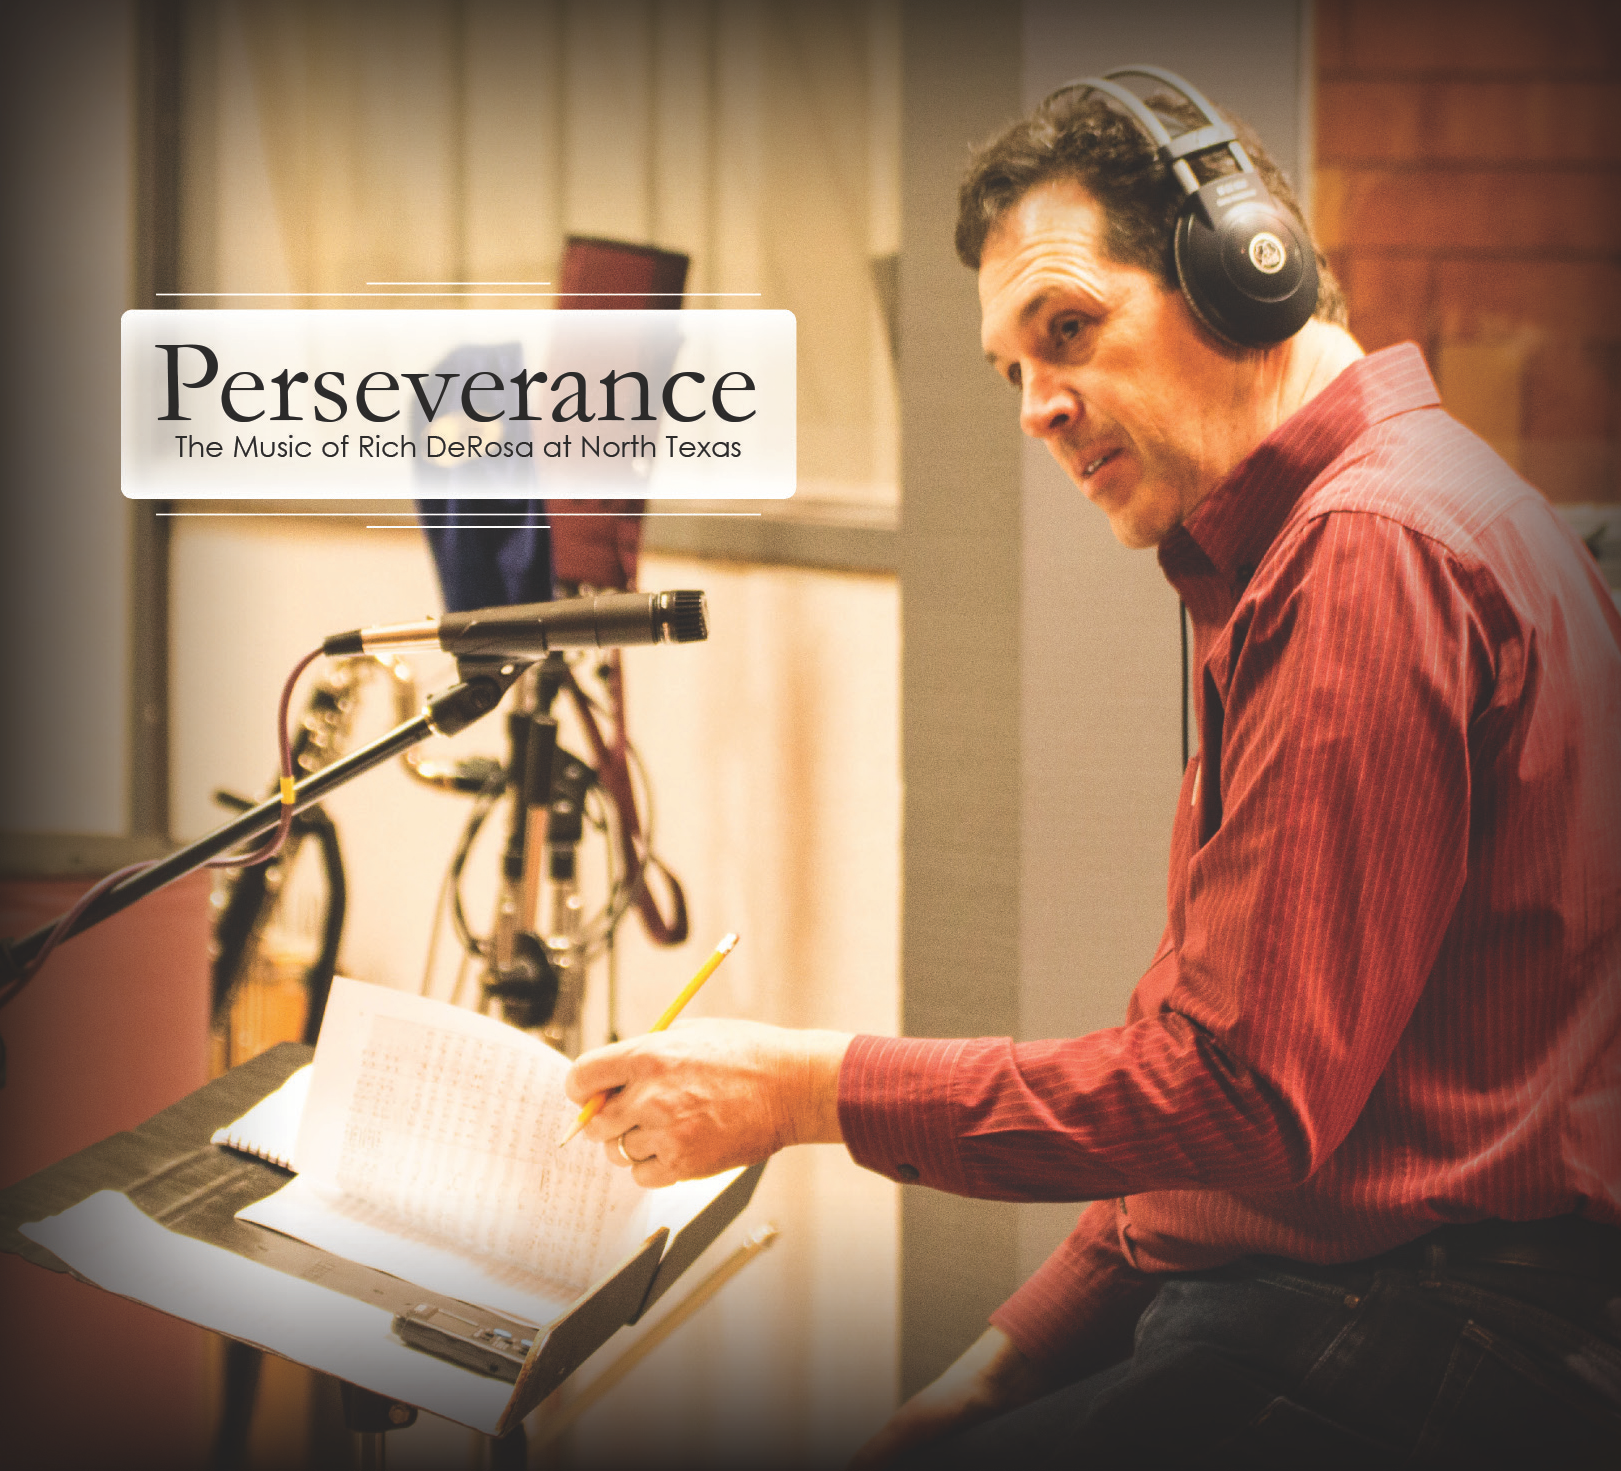 Perseverance — The Music of Rich DeRosa at North Texas is one of several CDs bei